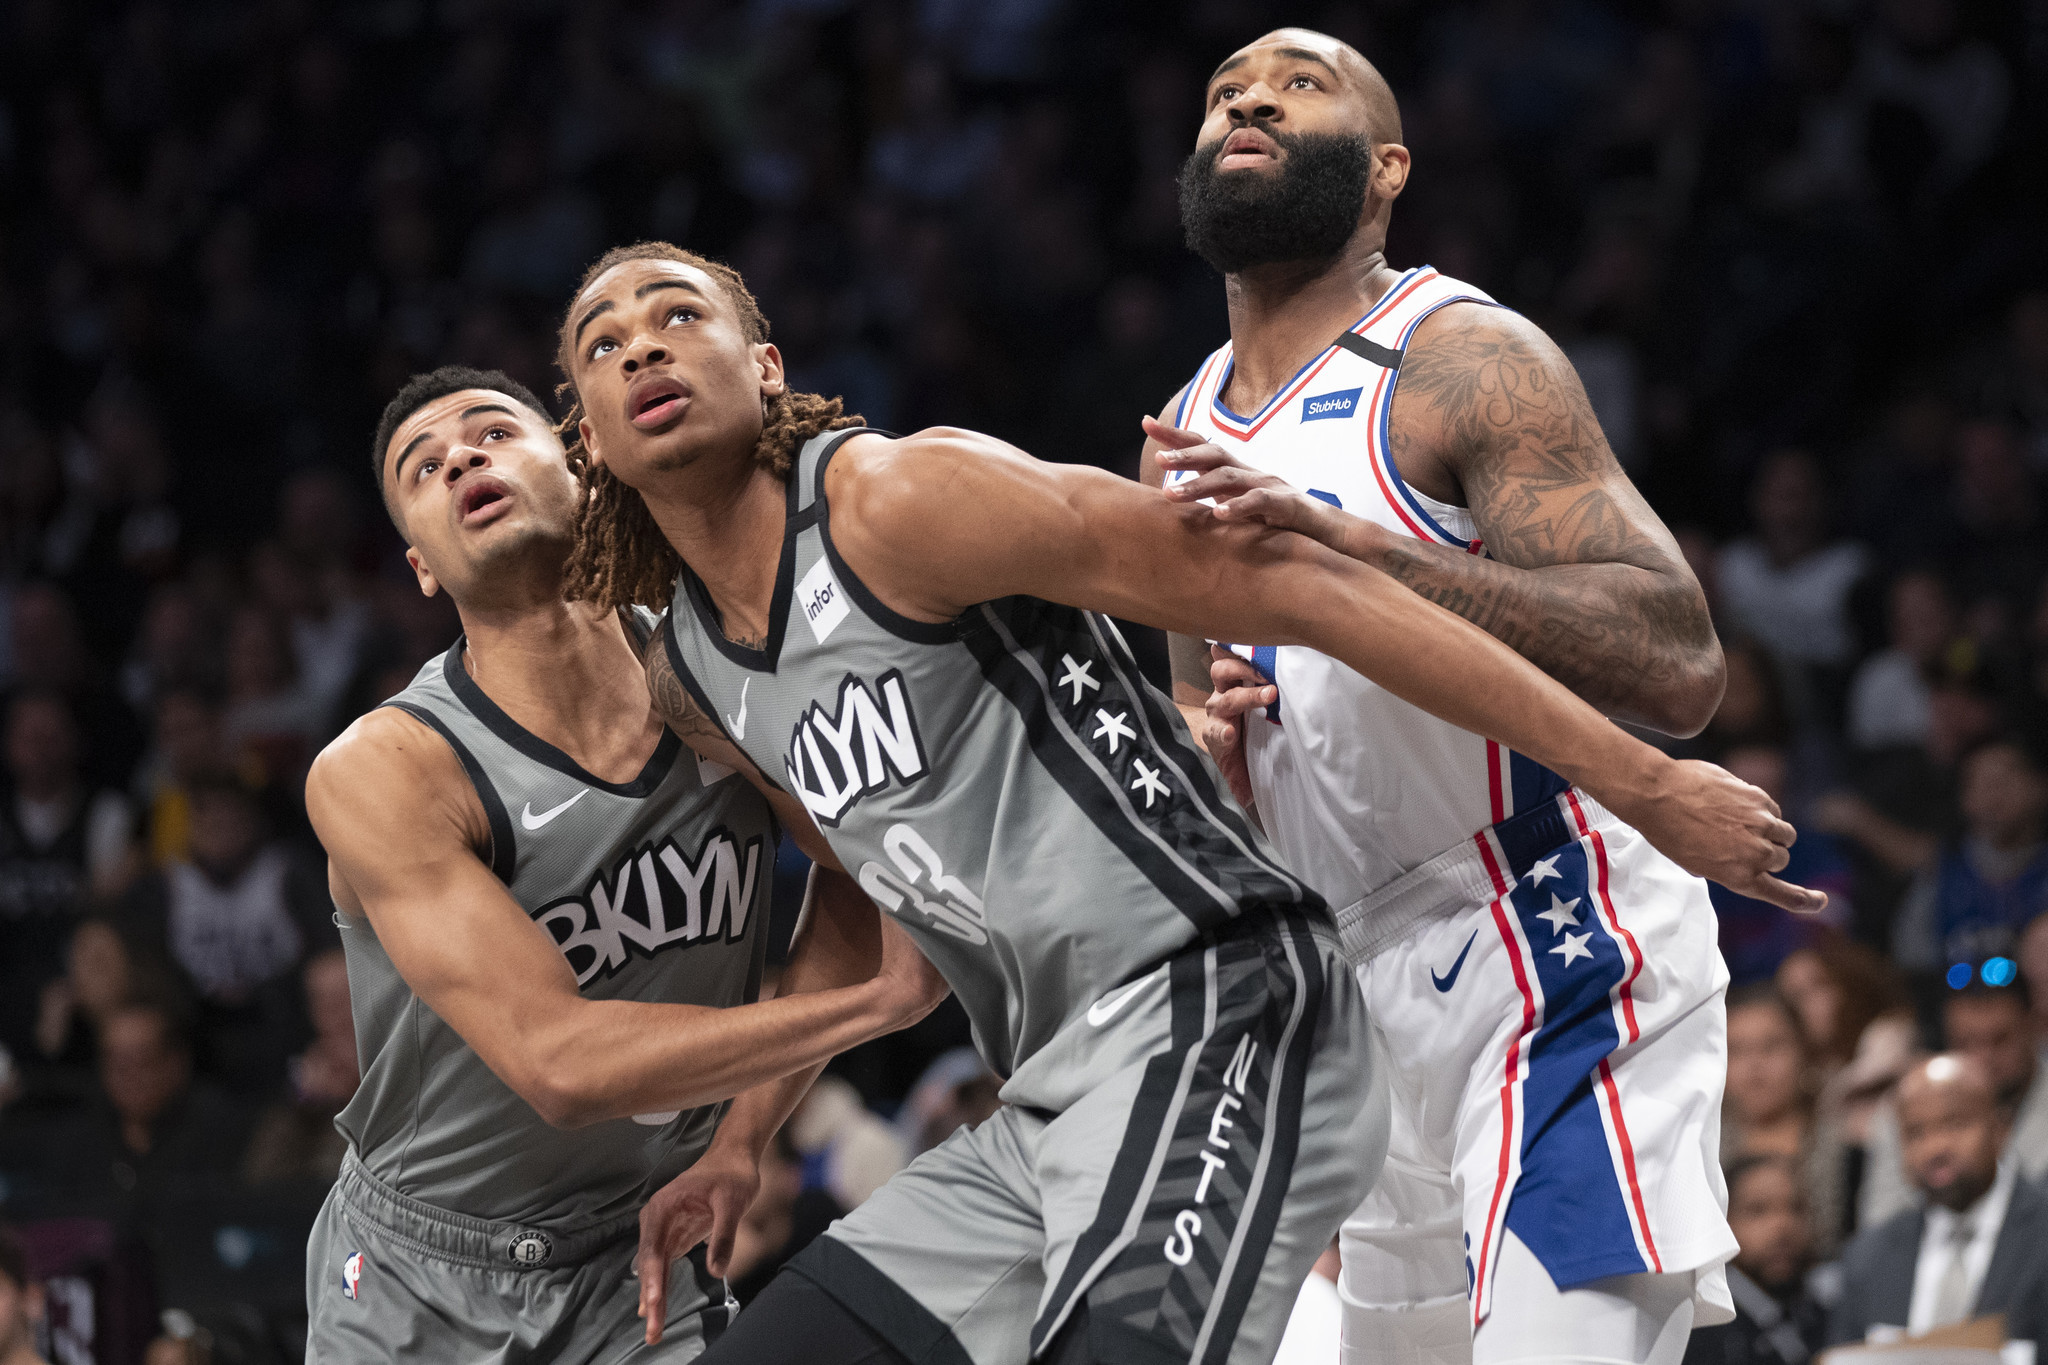 Nic Claxton continues to impress in the wake of Nets' injury woes